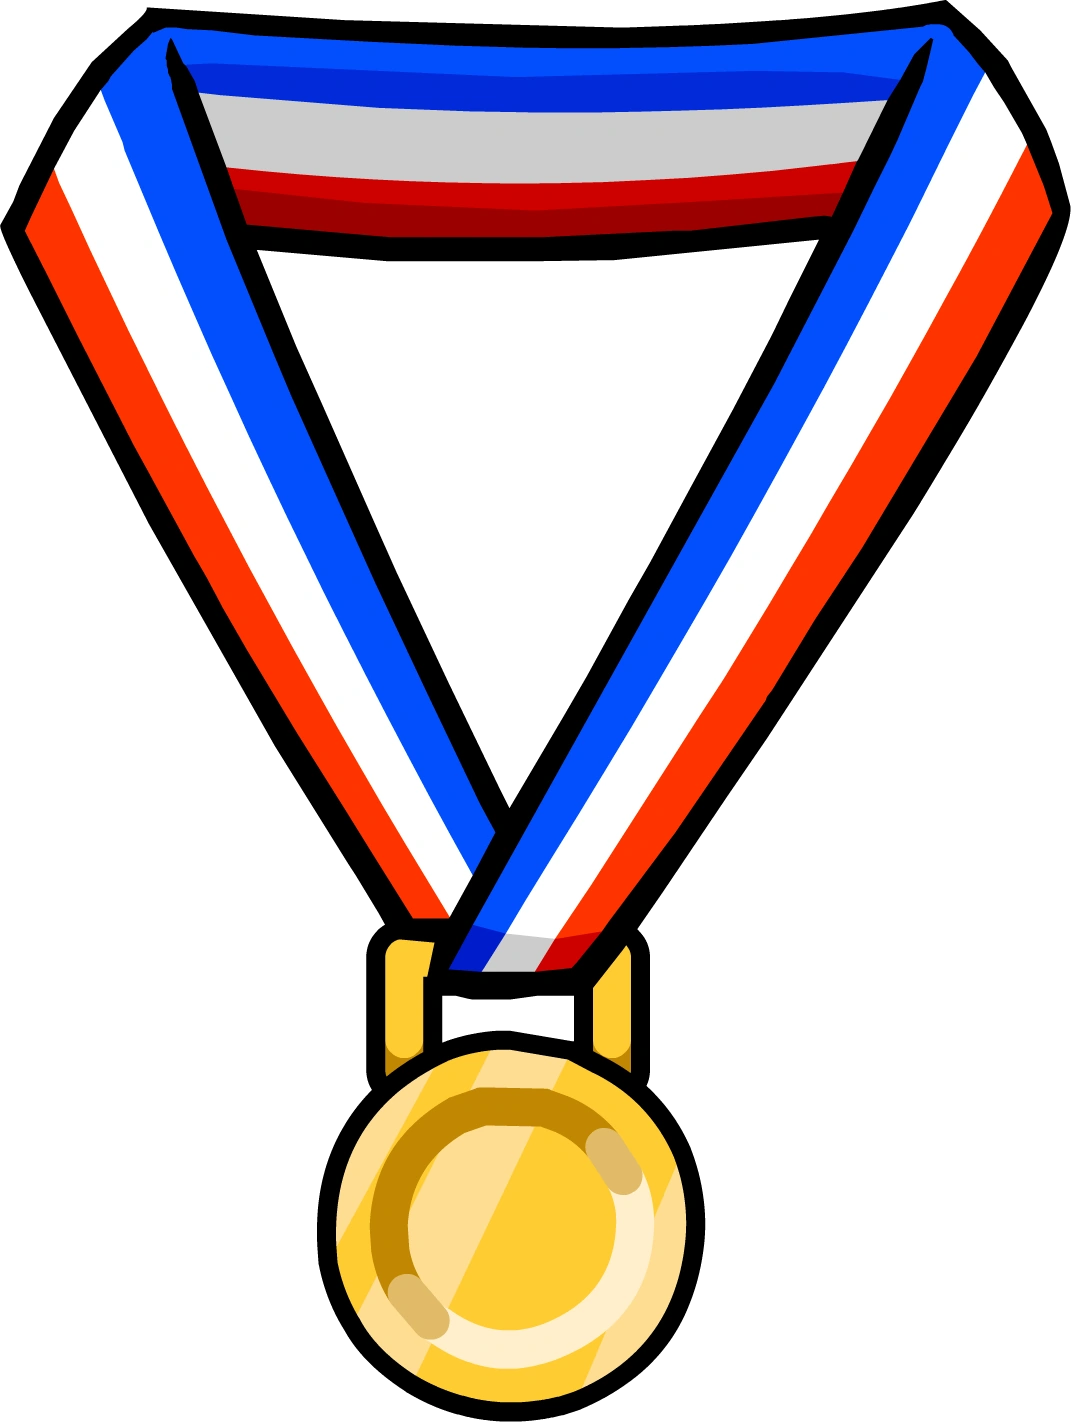 Gold Medal Club Penguin Wiki The Free Editable Encyclopedia About